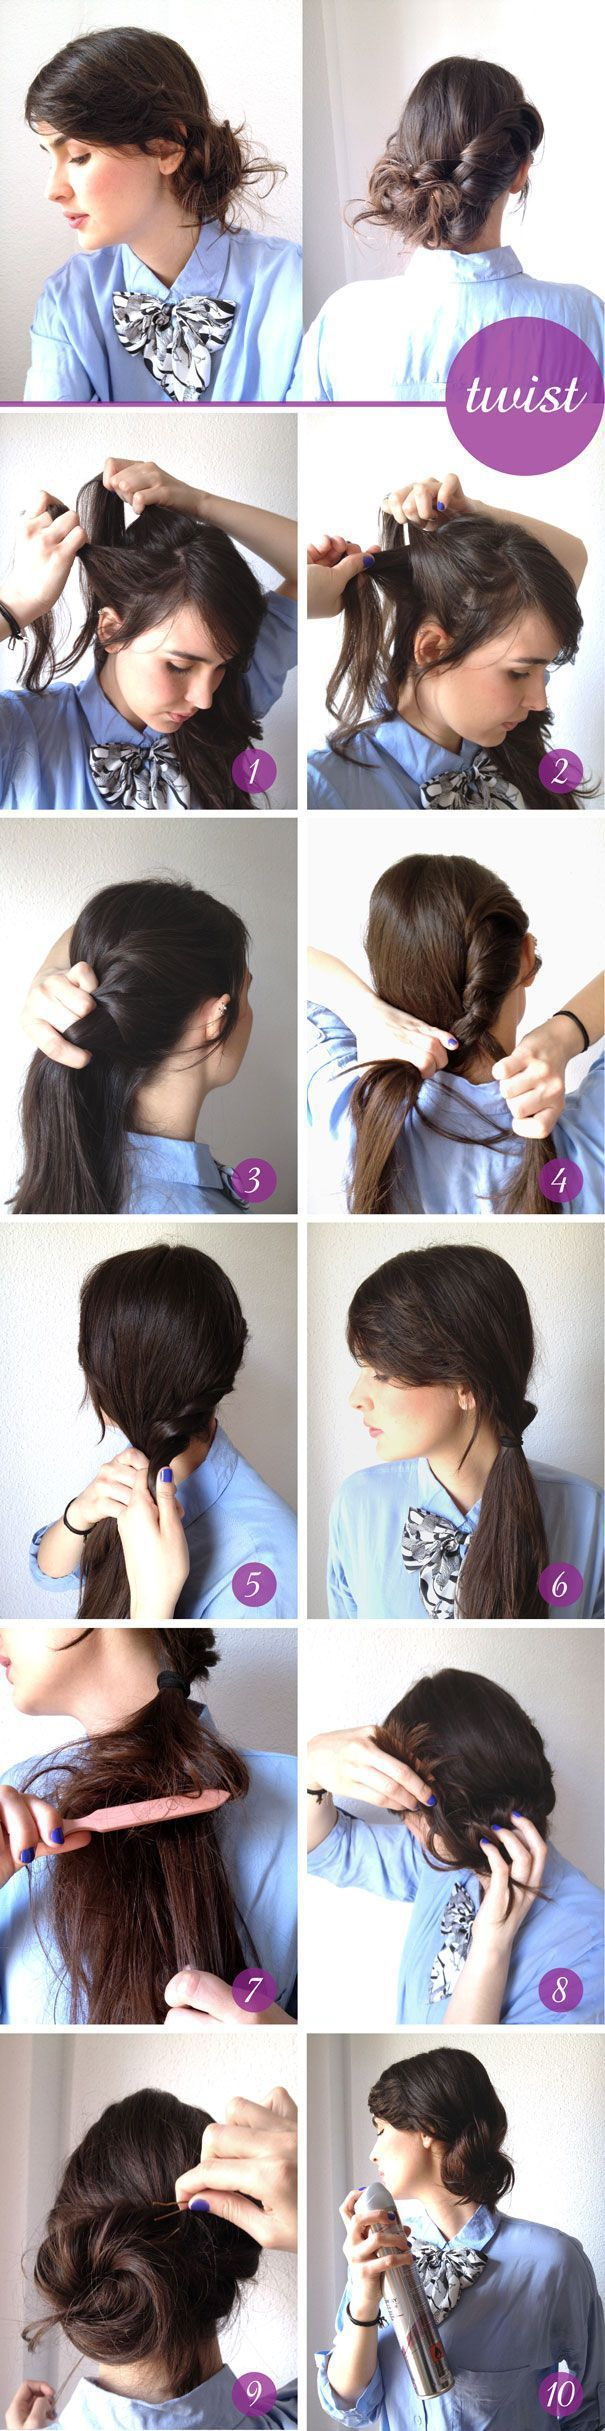 Creative Hairstyles That You Can Easily Do at Home (27 - How To Make Hairstyle At Home For Girls Step By Step